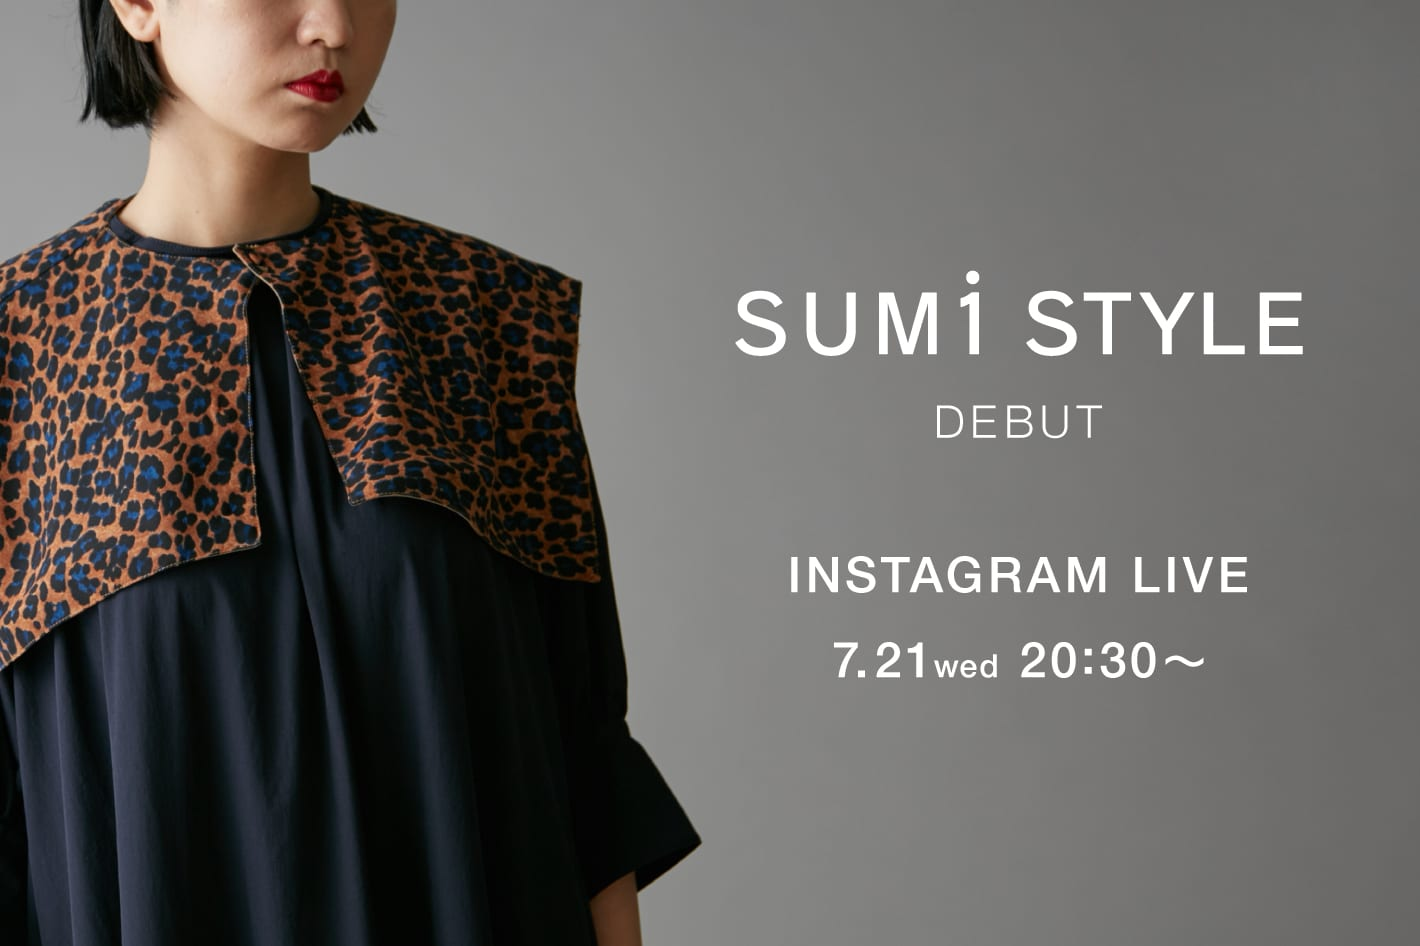 ear PAPILLONNER 【SUM1 STYLE DEBUT】<br>7.21.wed 20:30~ INSTAGRAM LIVE